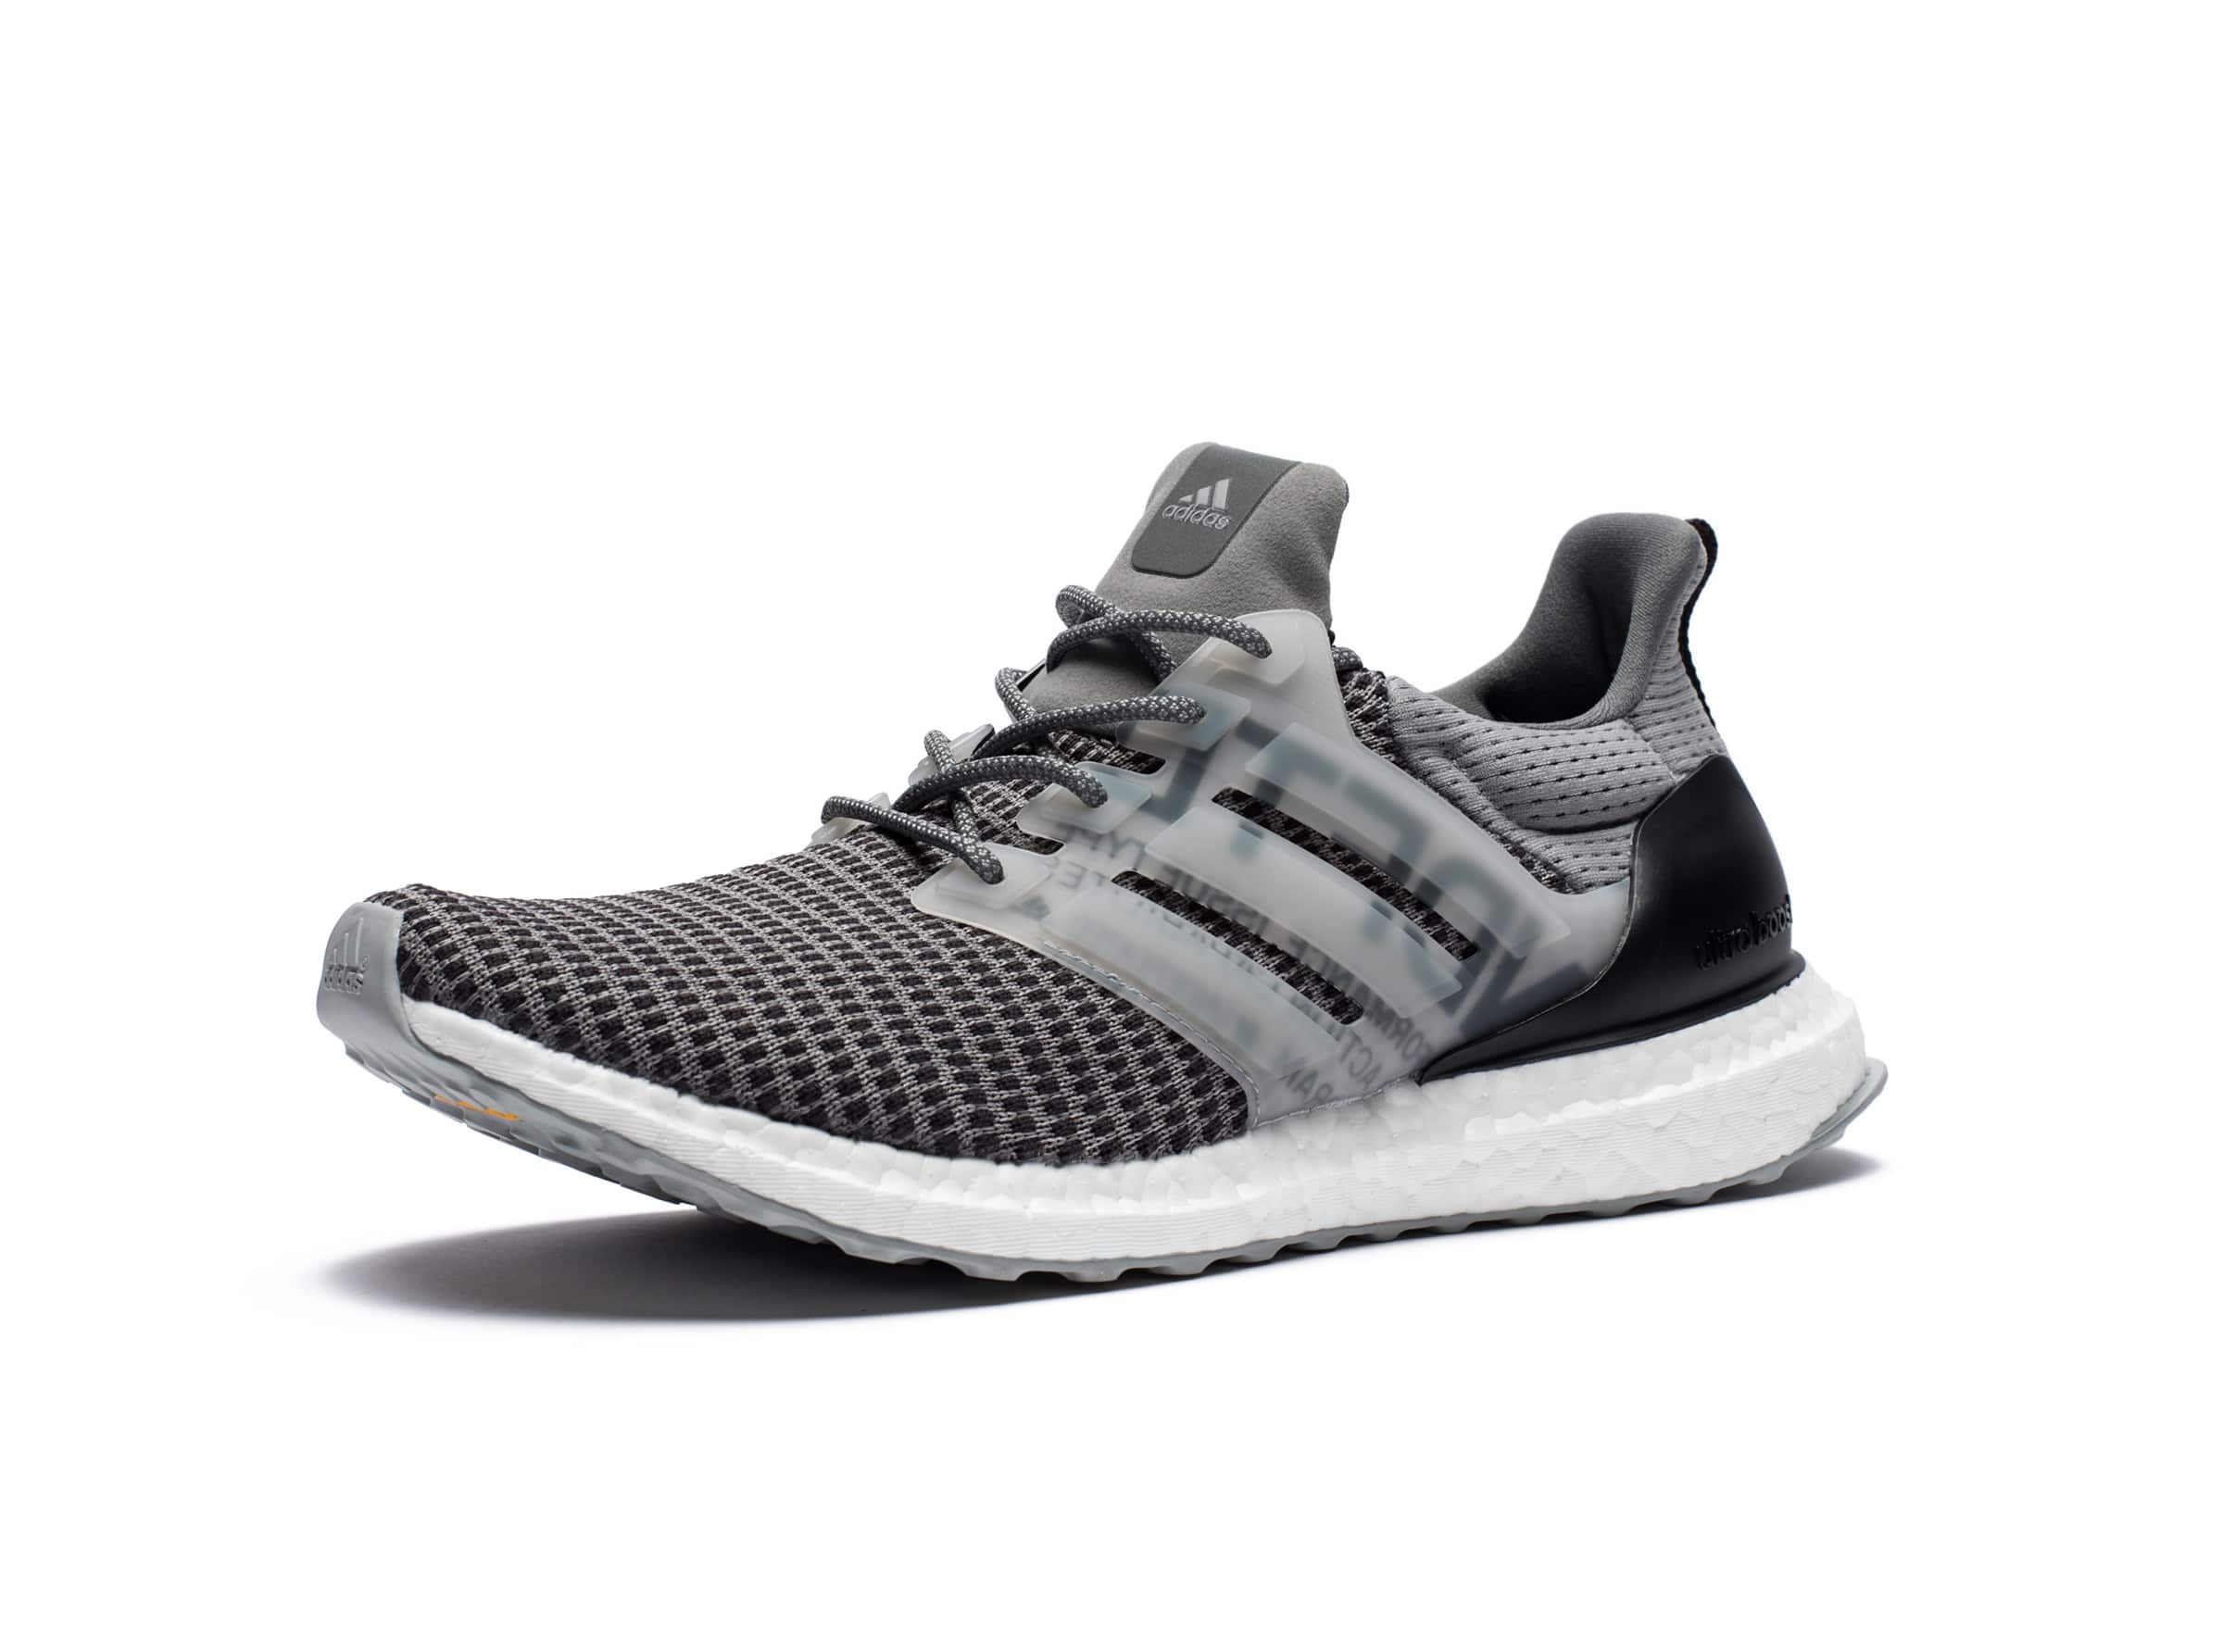 43b84a65fa2 ADIDAS X UNDEFEATED ULTRABOOST - CLEARONIX